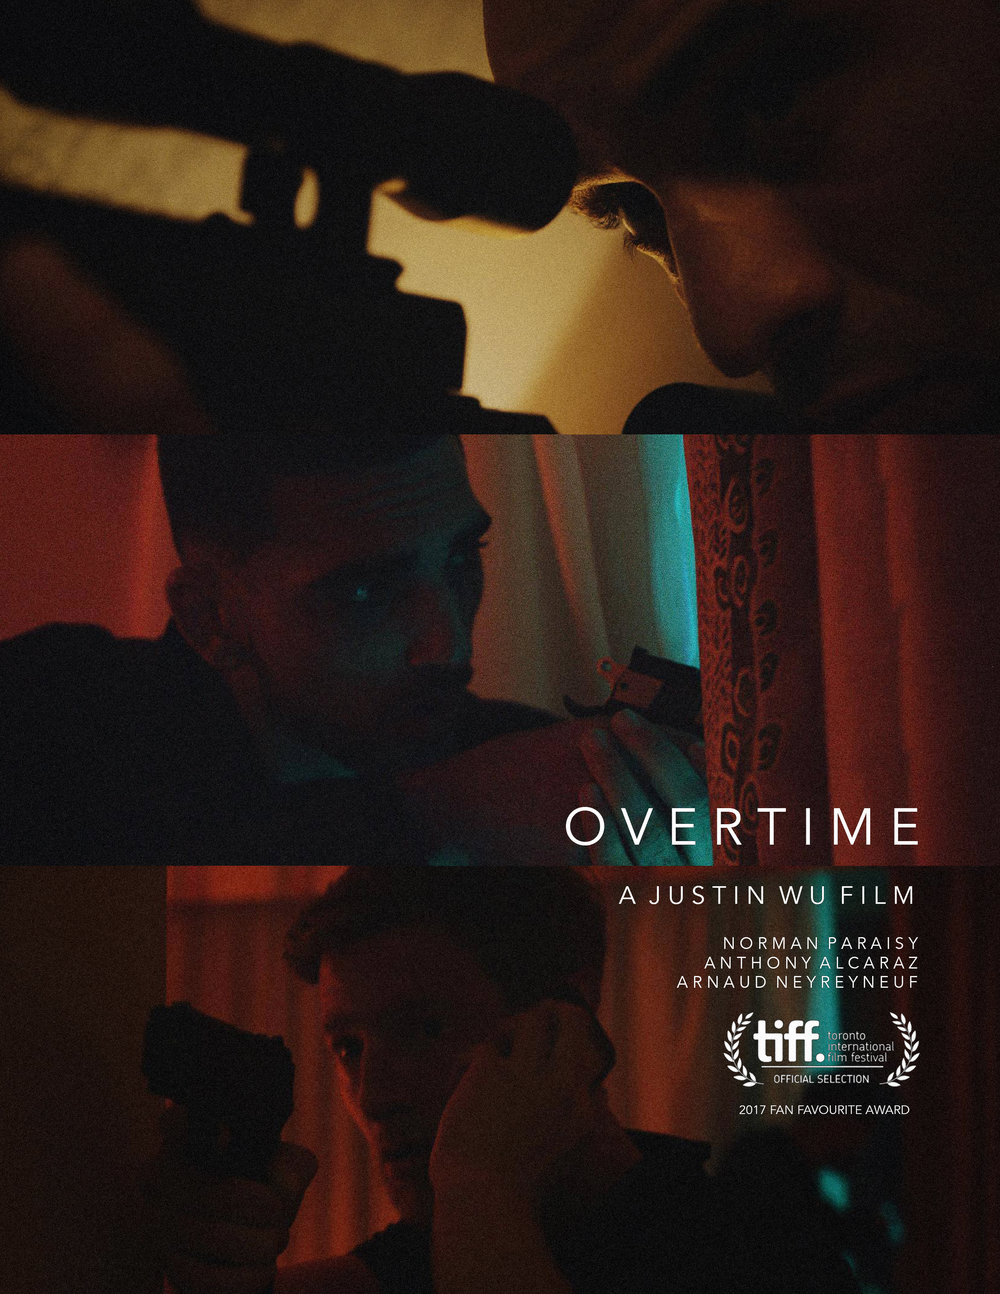 Overtime by Justin Wu